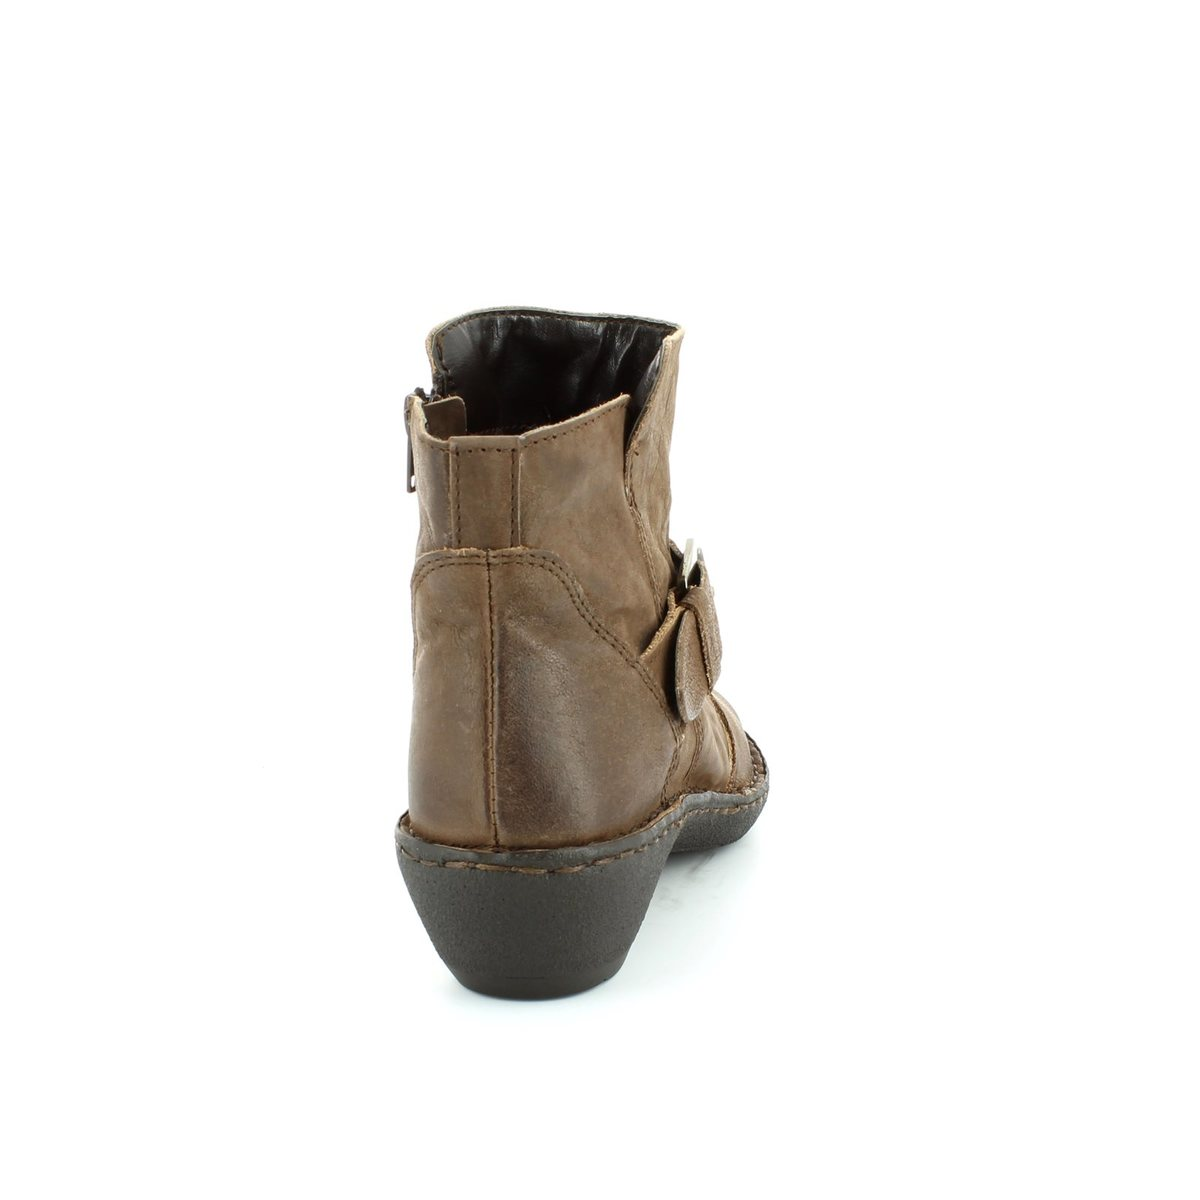 e915471578 Relaxshoe Ankle Boots - Brown - BESNA 29058/20